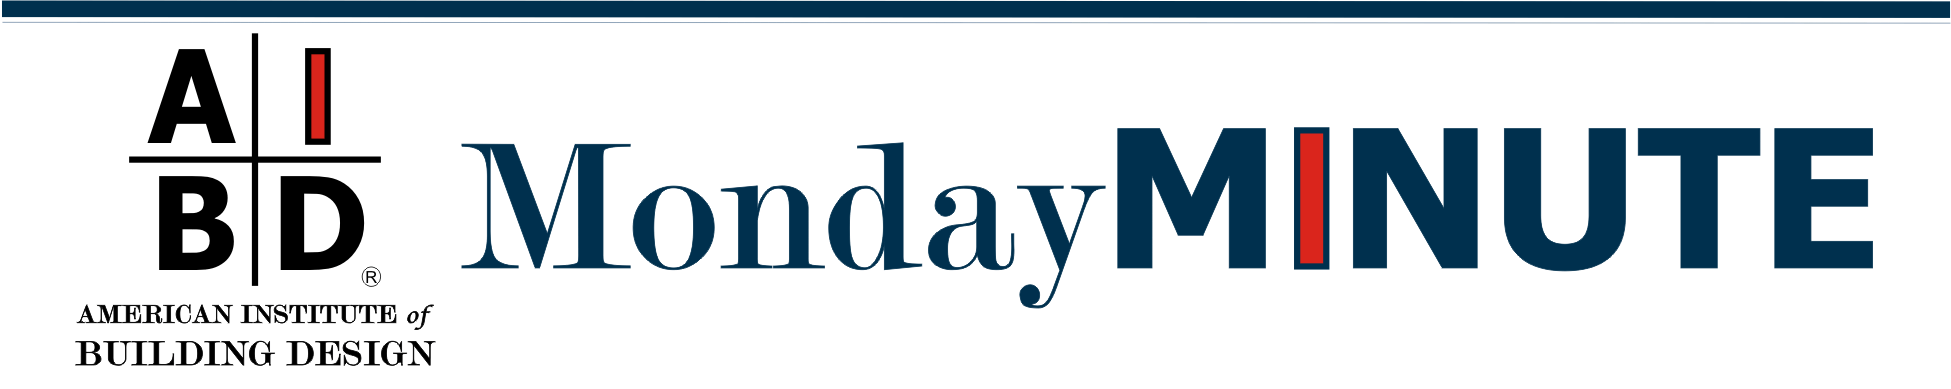 May 07, 2018  What's happening @AIBD_National? - AIBD MondayMINUTE